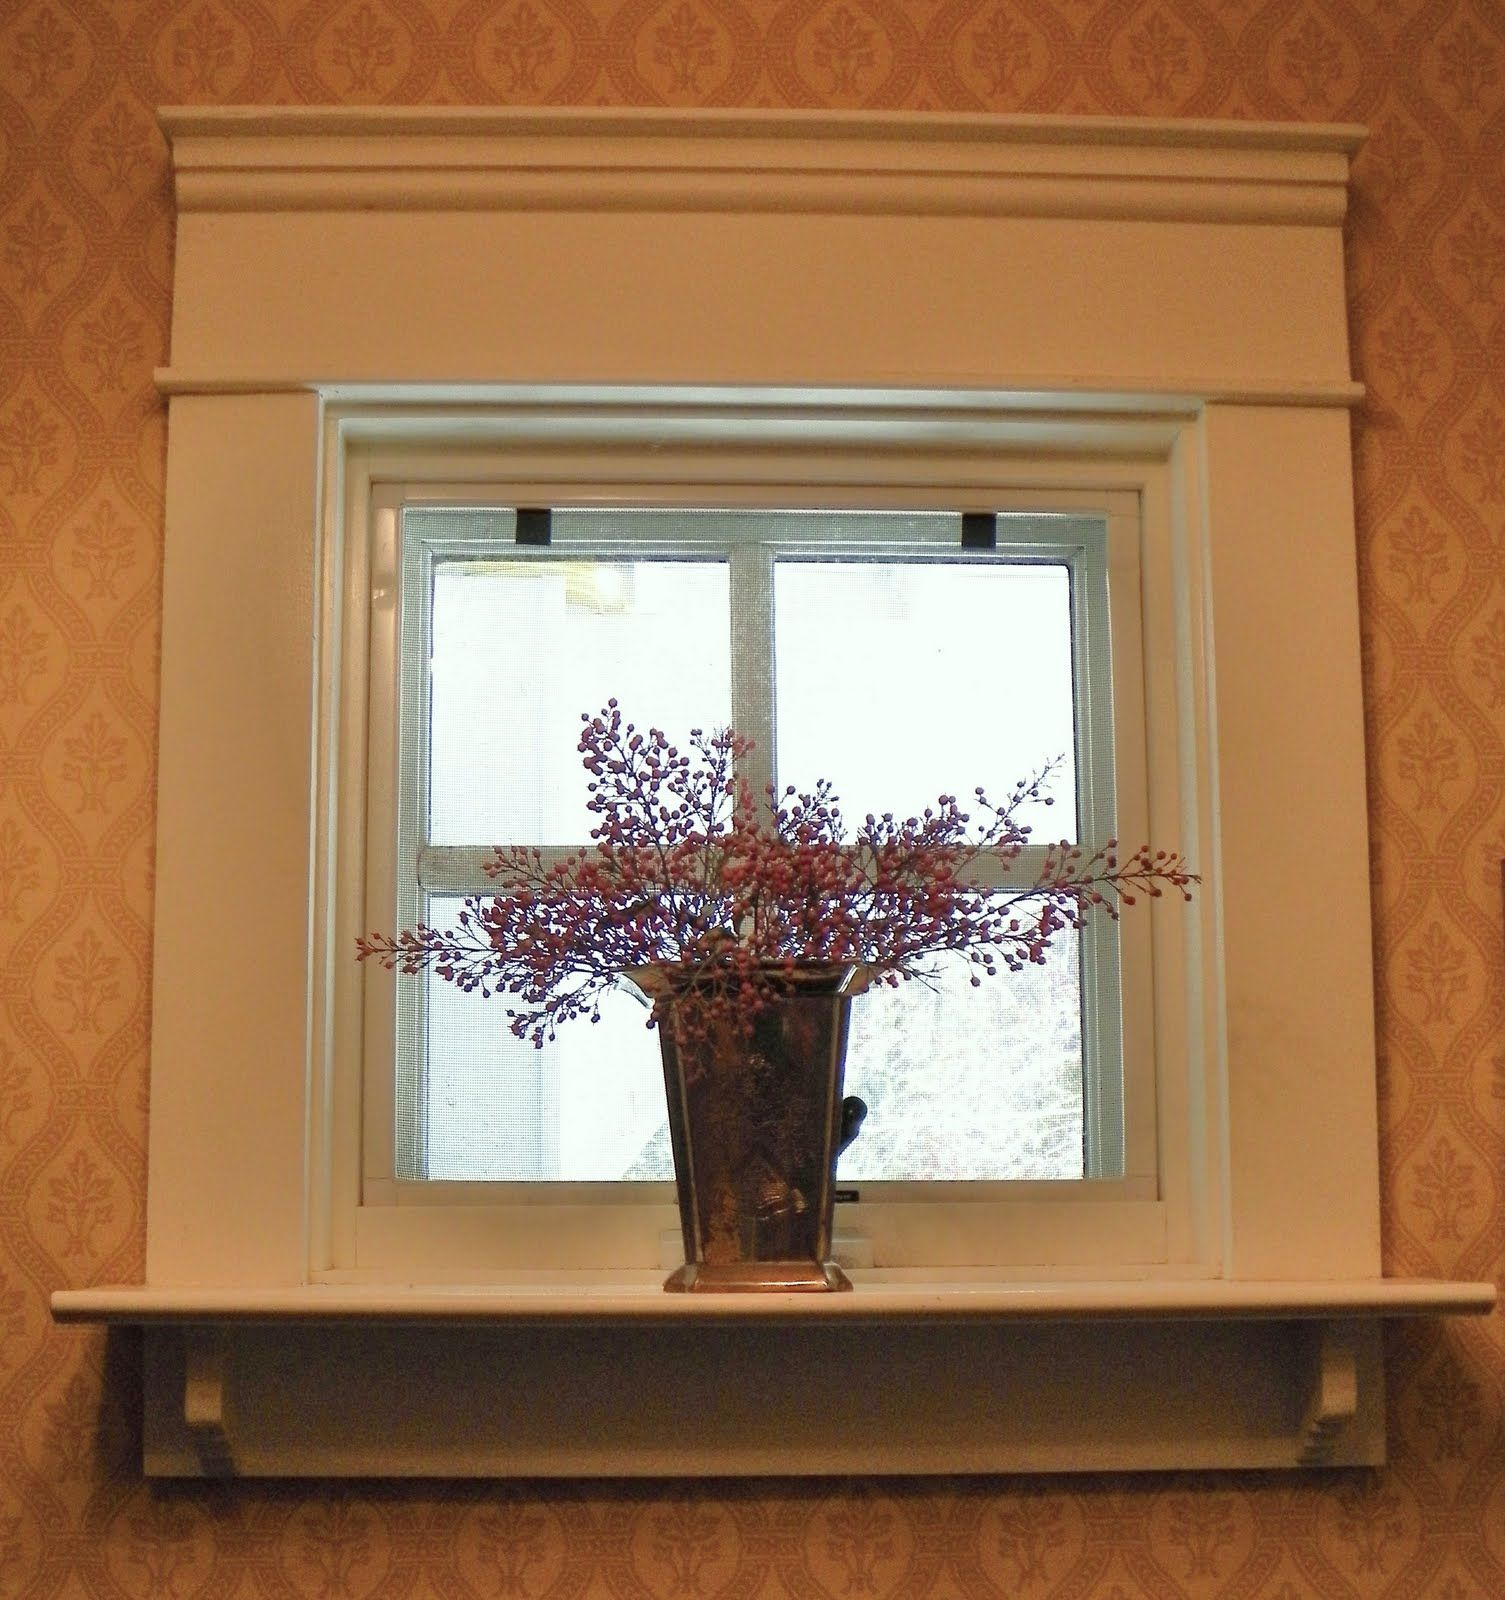 Window Sill Extension For Plants | Tyres2c